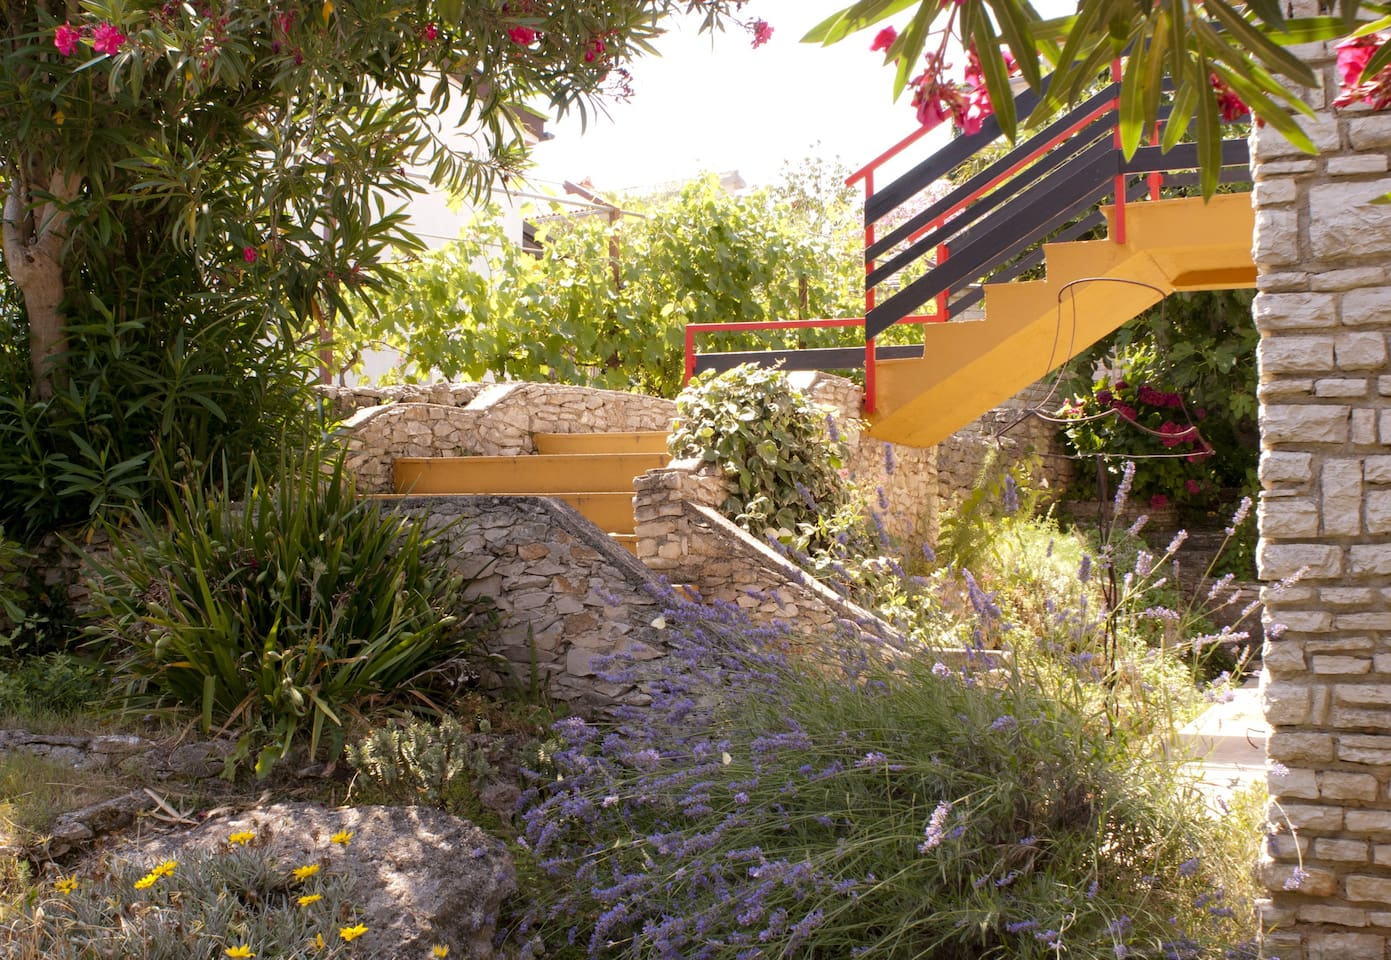 Outdoor staircases which lead to the apartment were conceived as a walk through the garden.